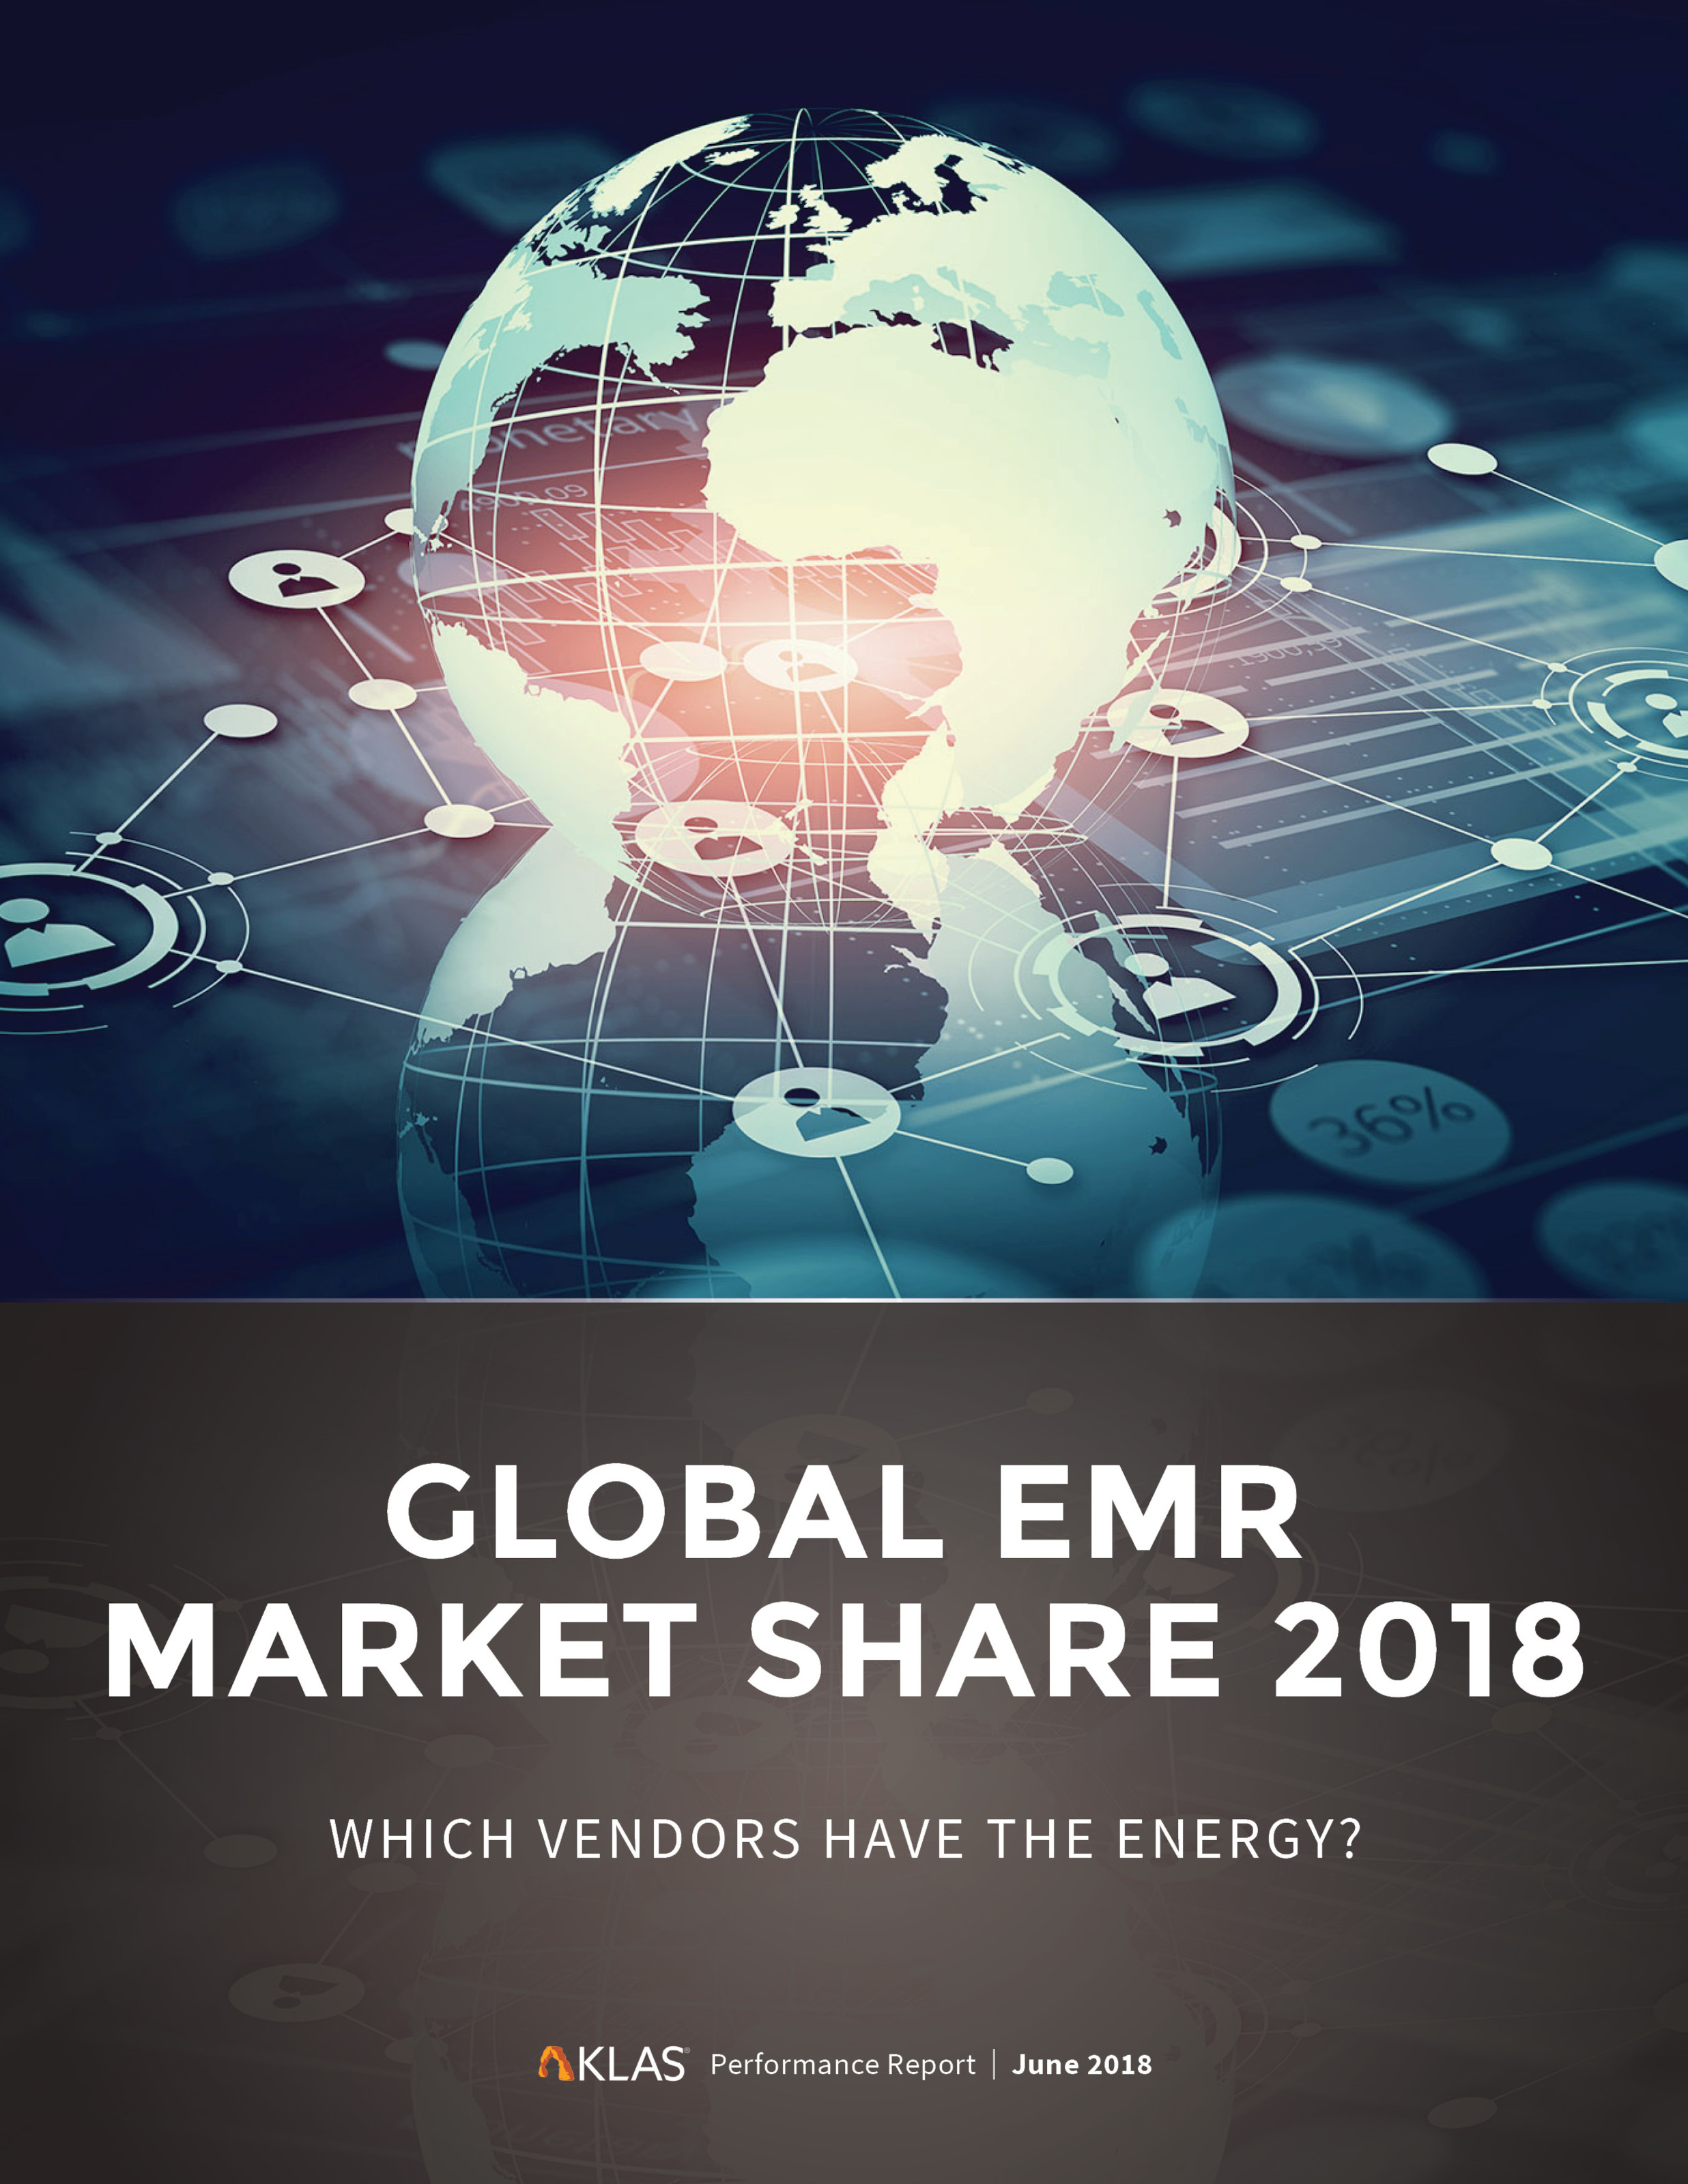 Global EMR Market Share 2018